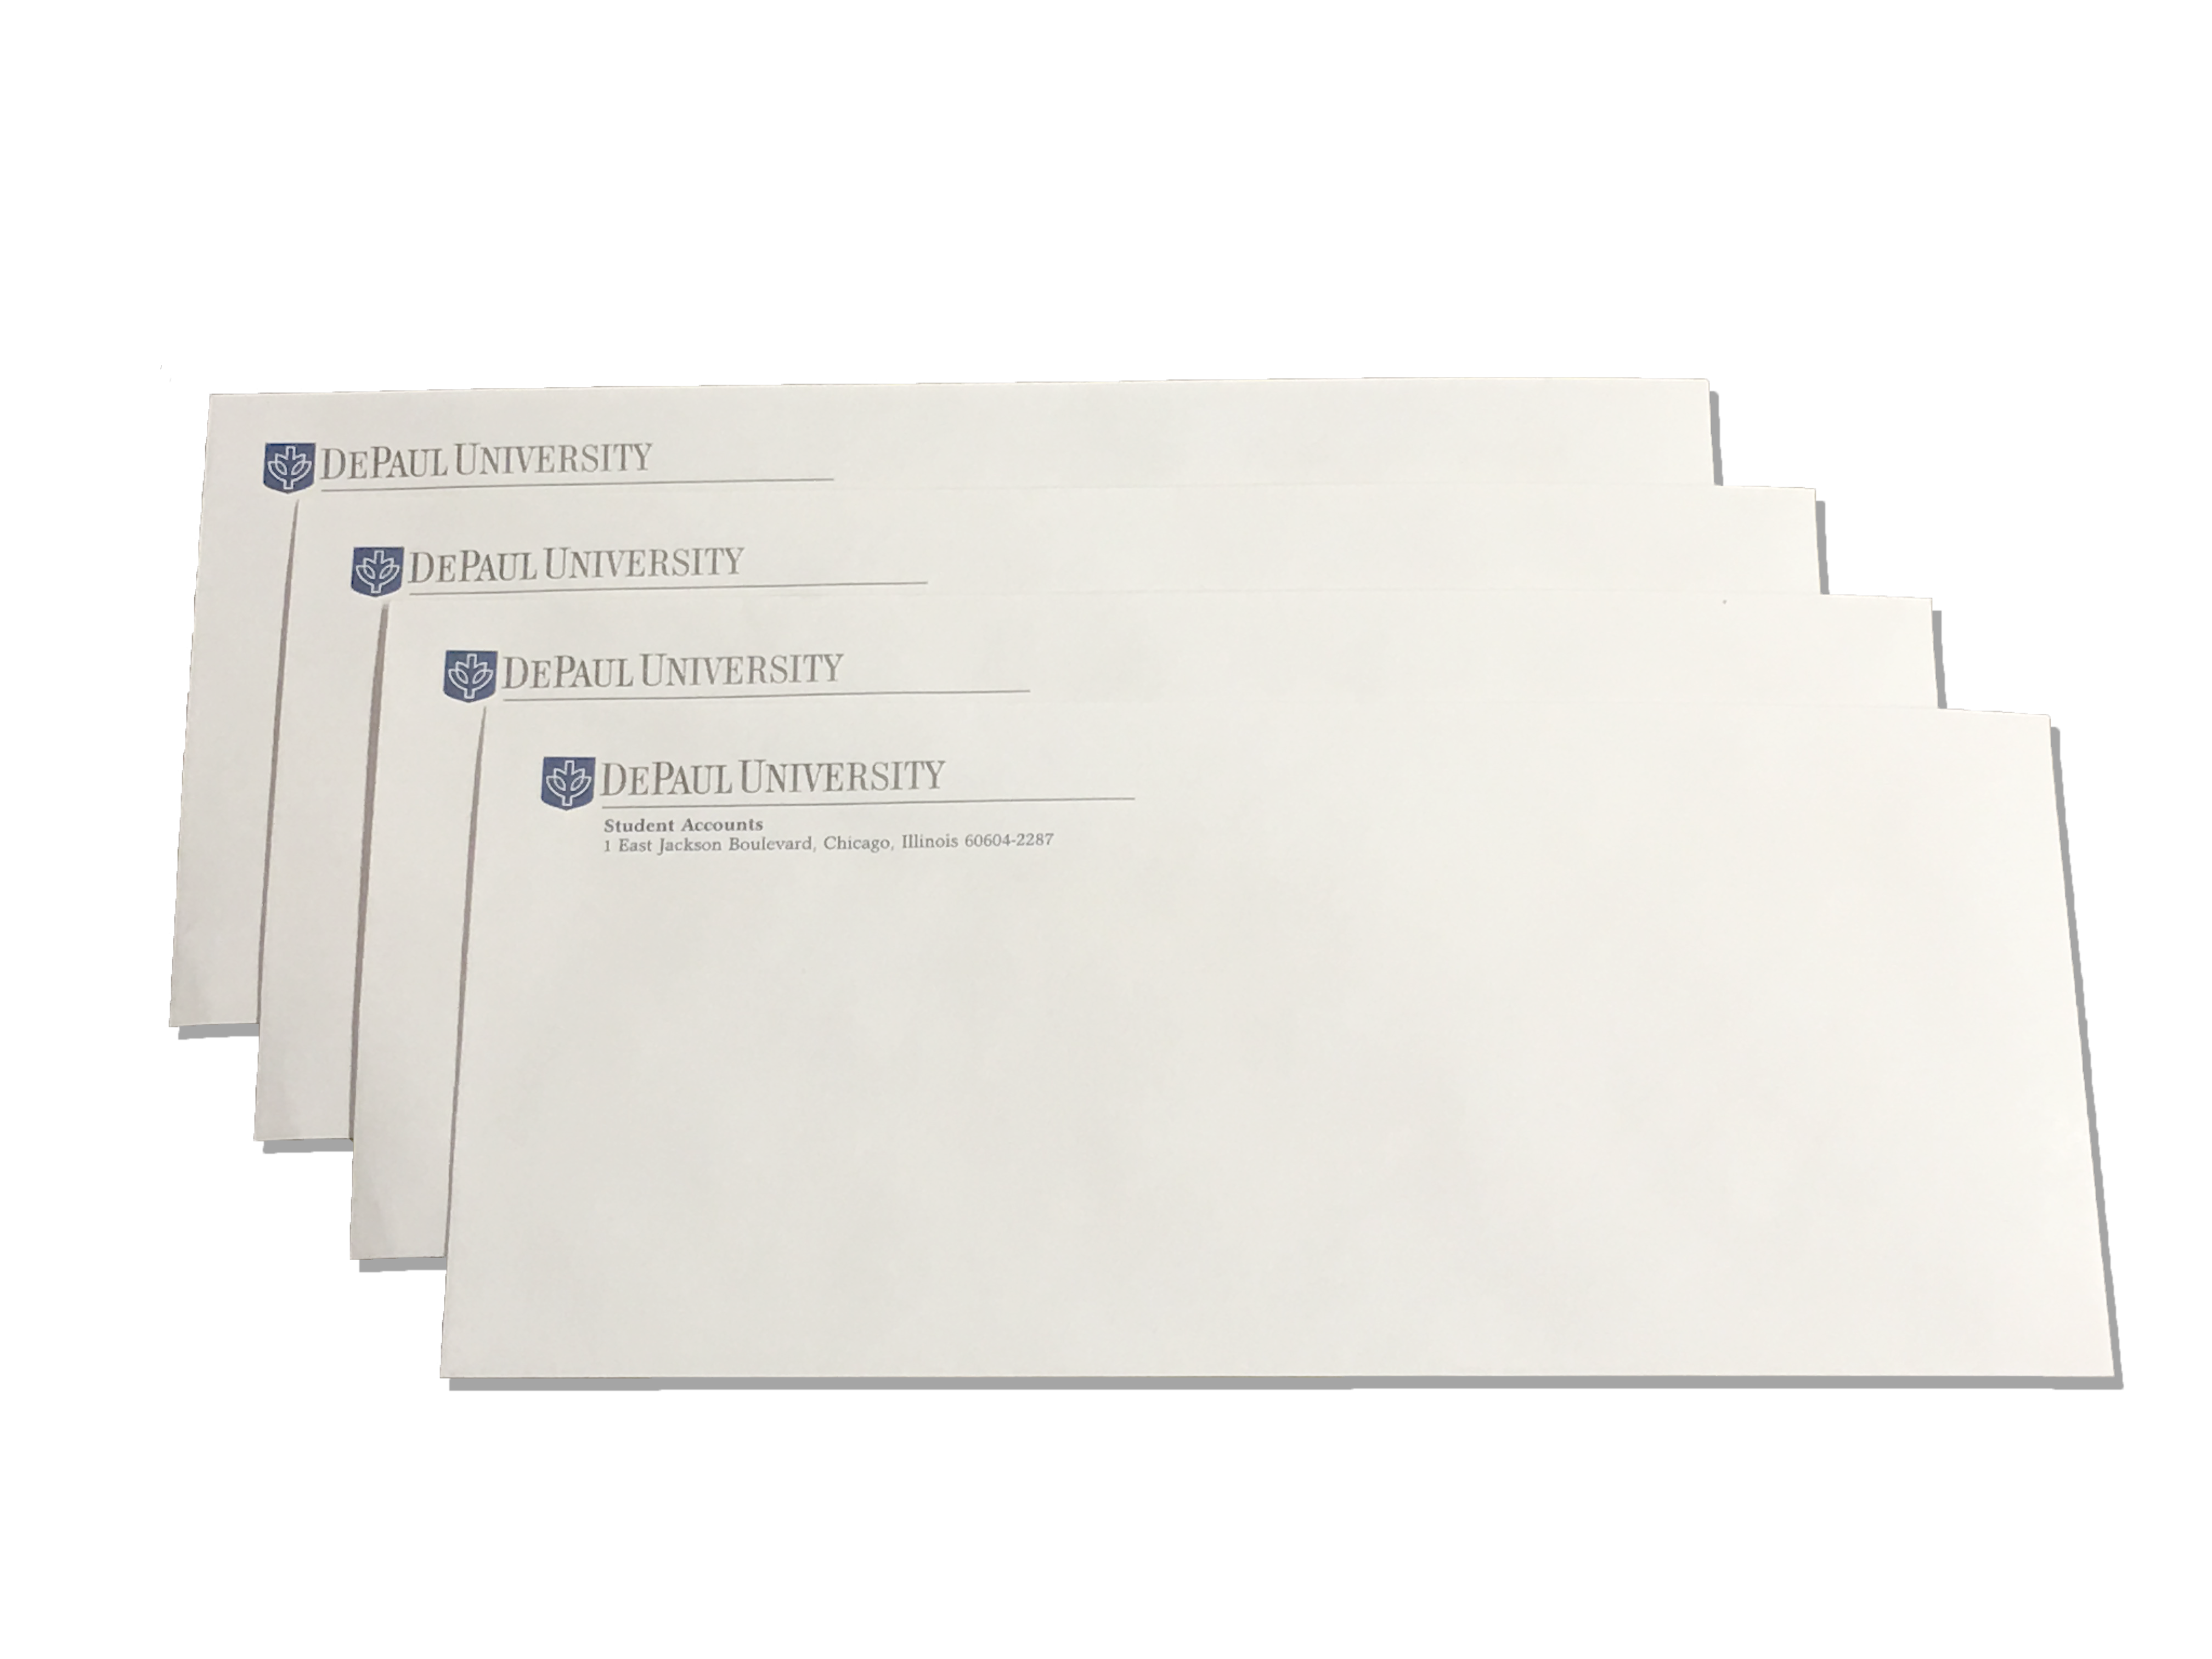 Letter envelope png. Outgoing mail university print